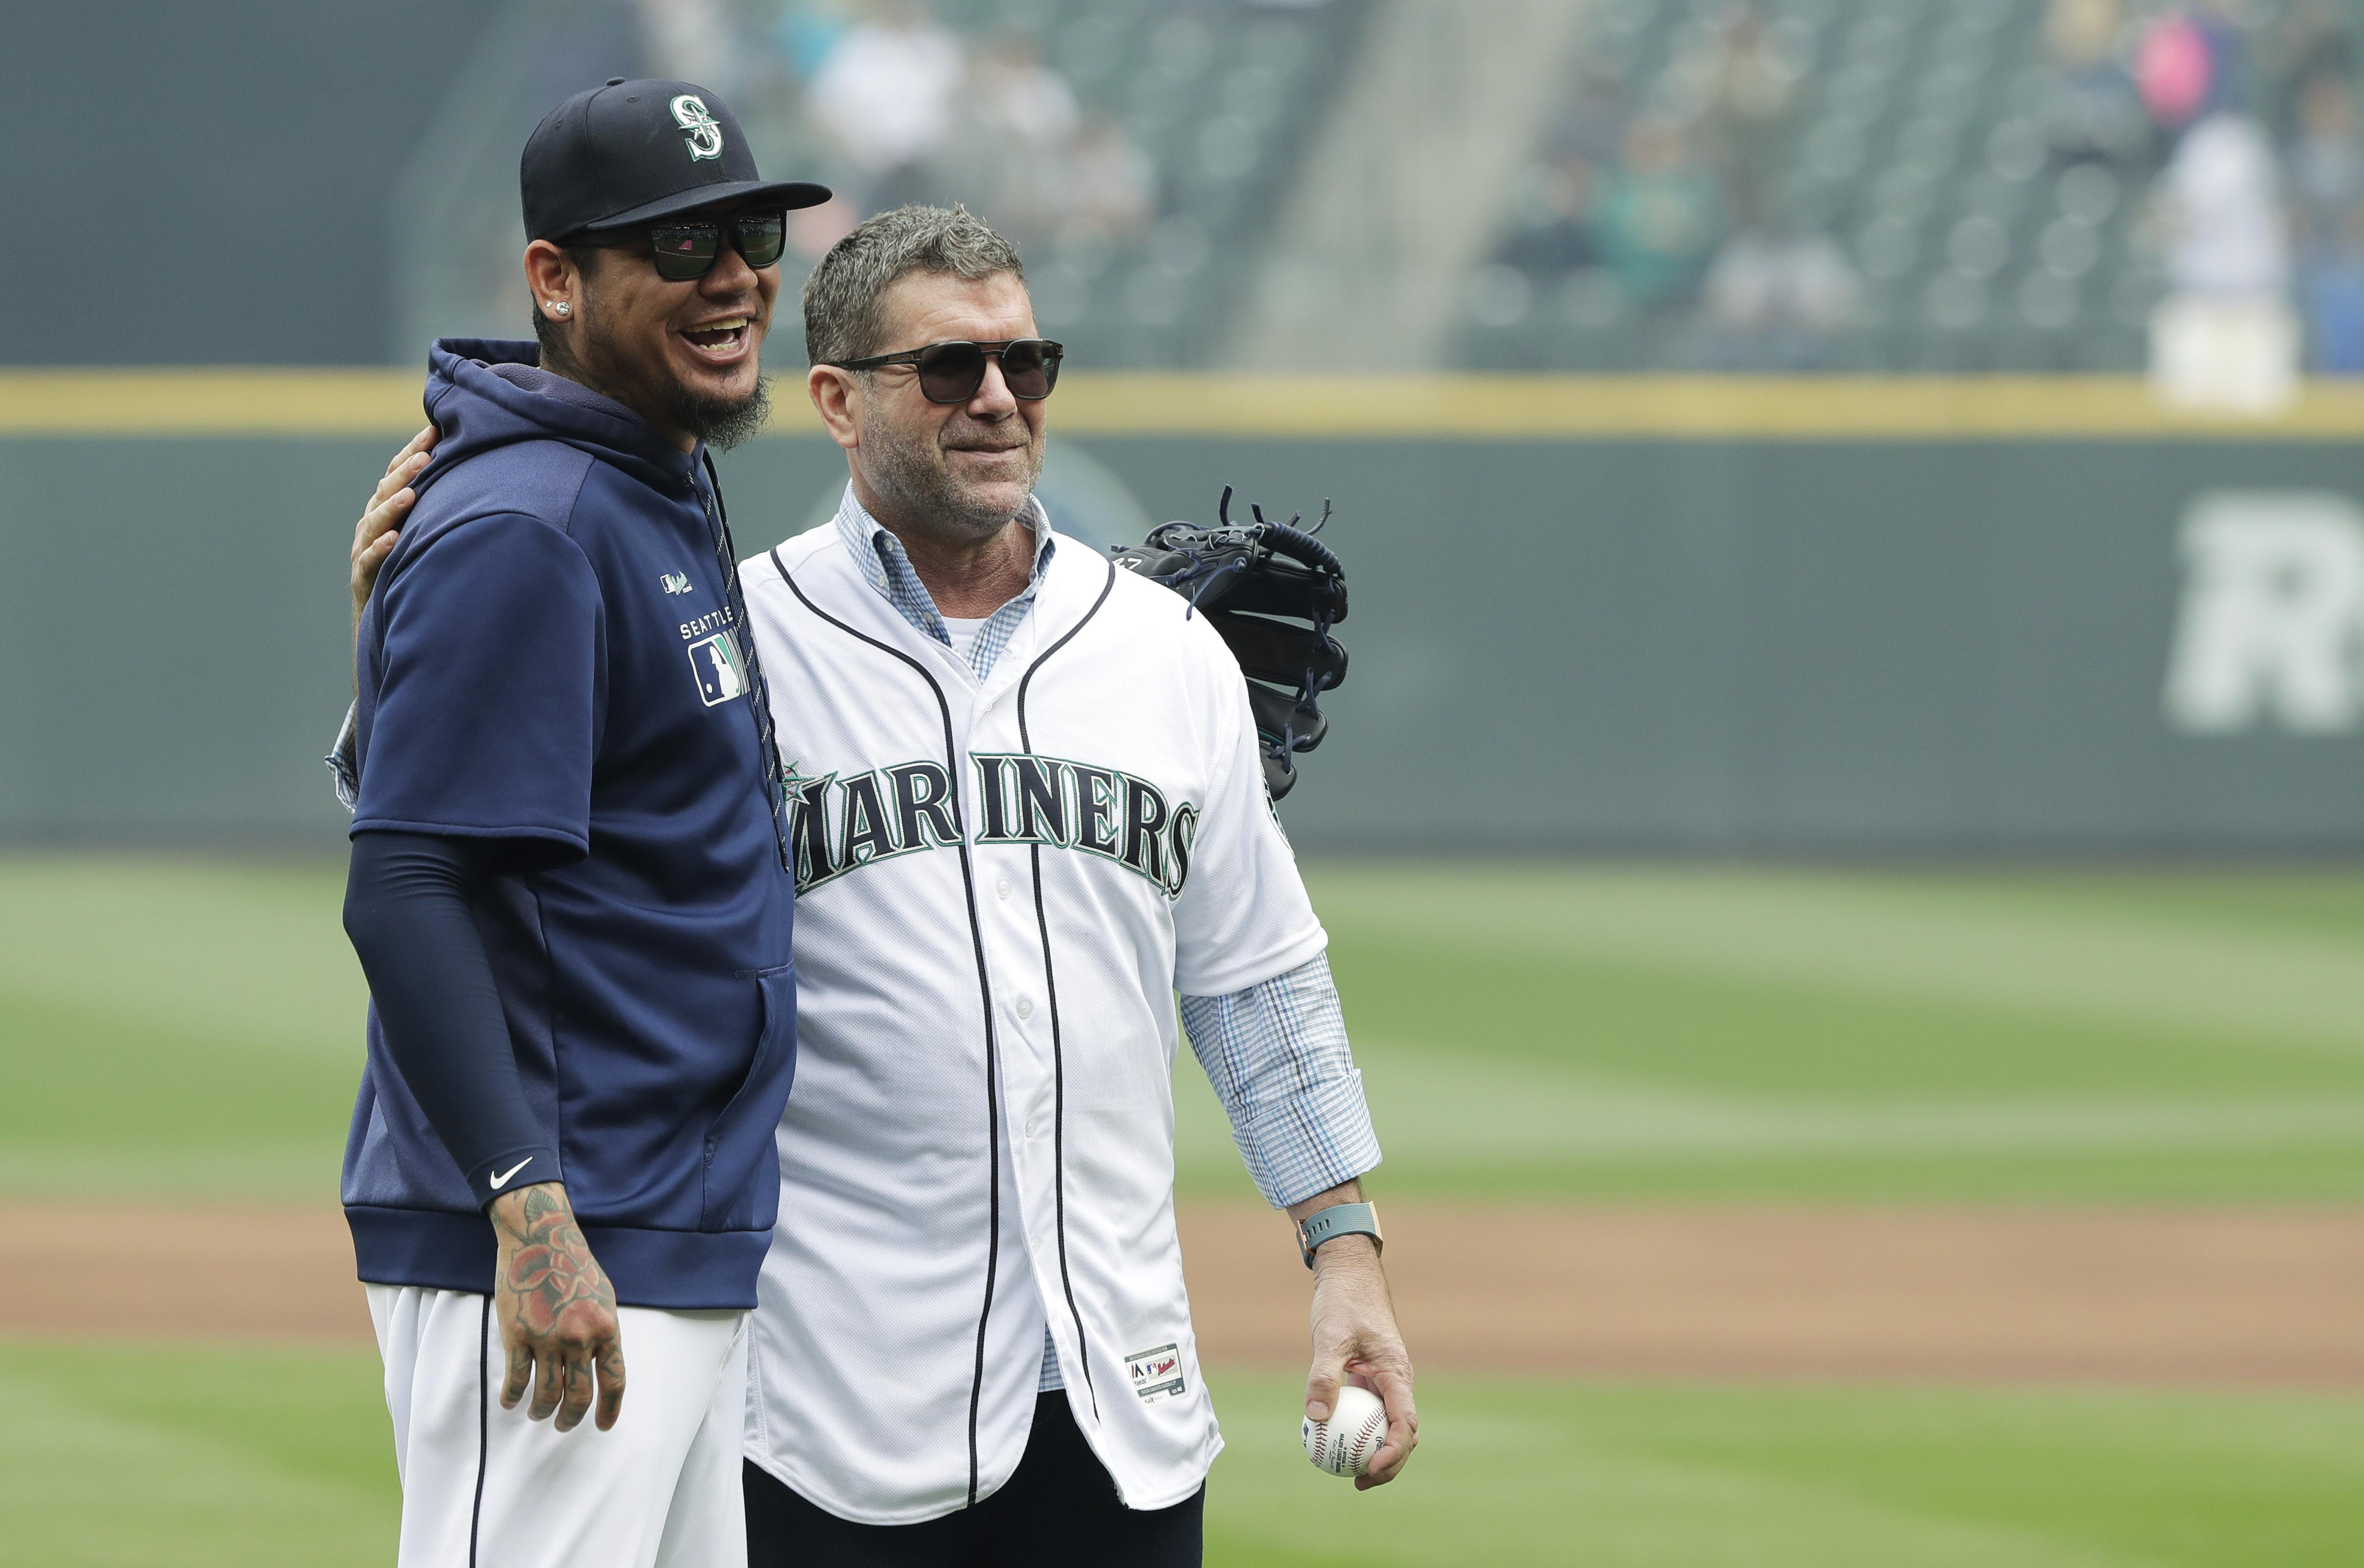 204cefe6 Mariners lose 1-0 to Rays; Felix Hernandez and Edgar Martinez share ...